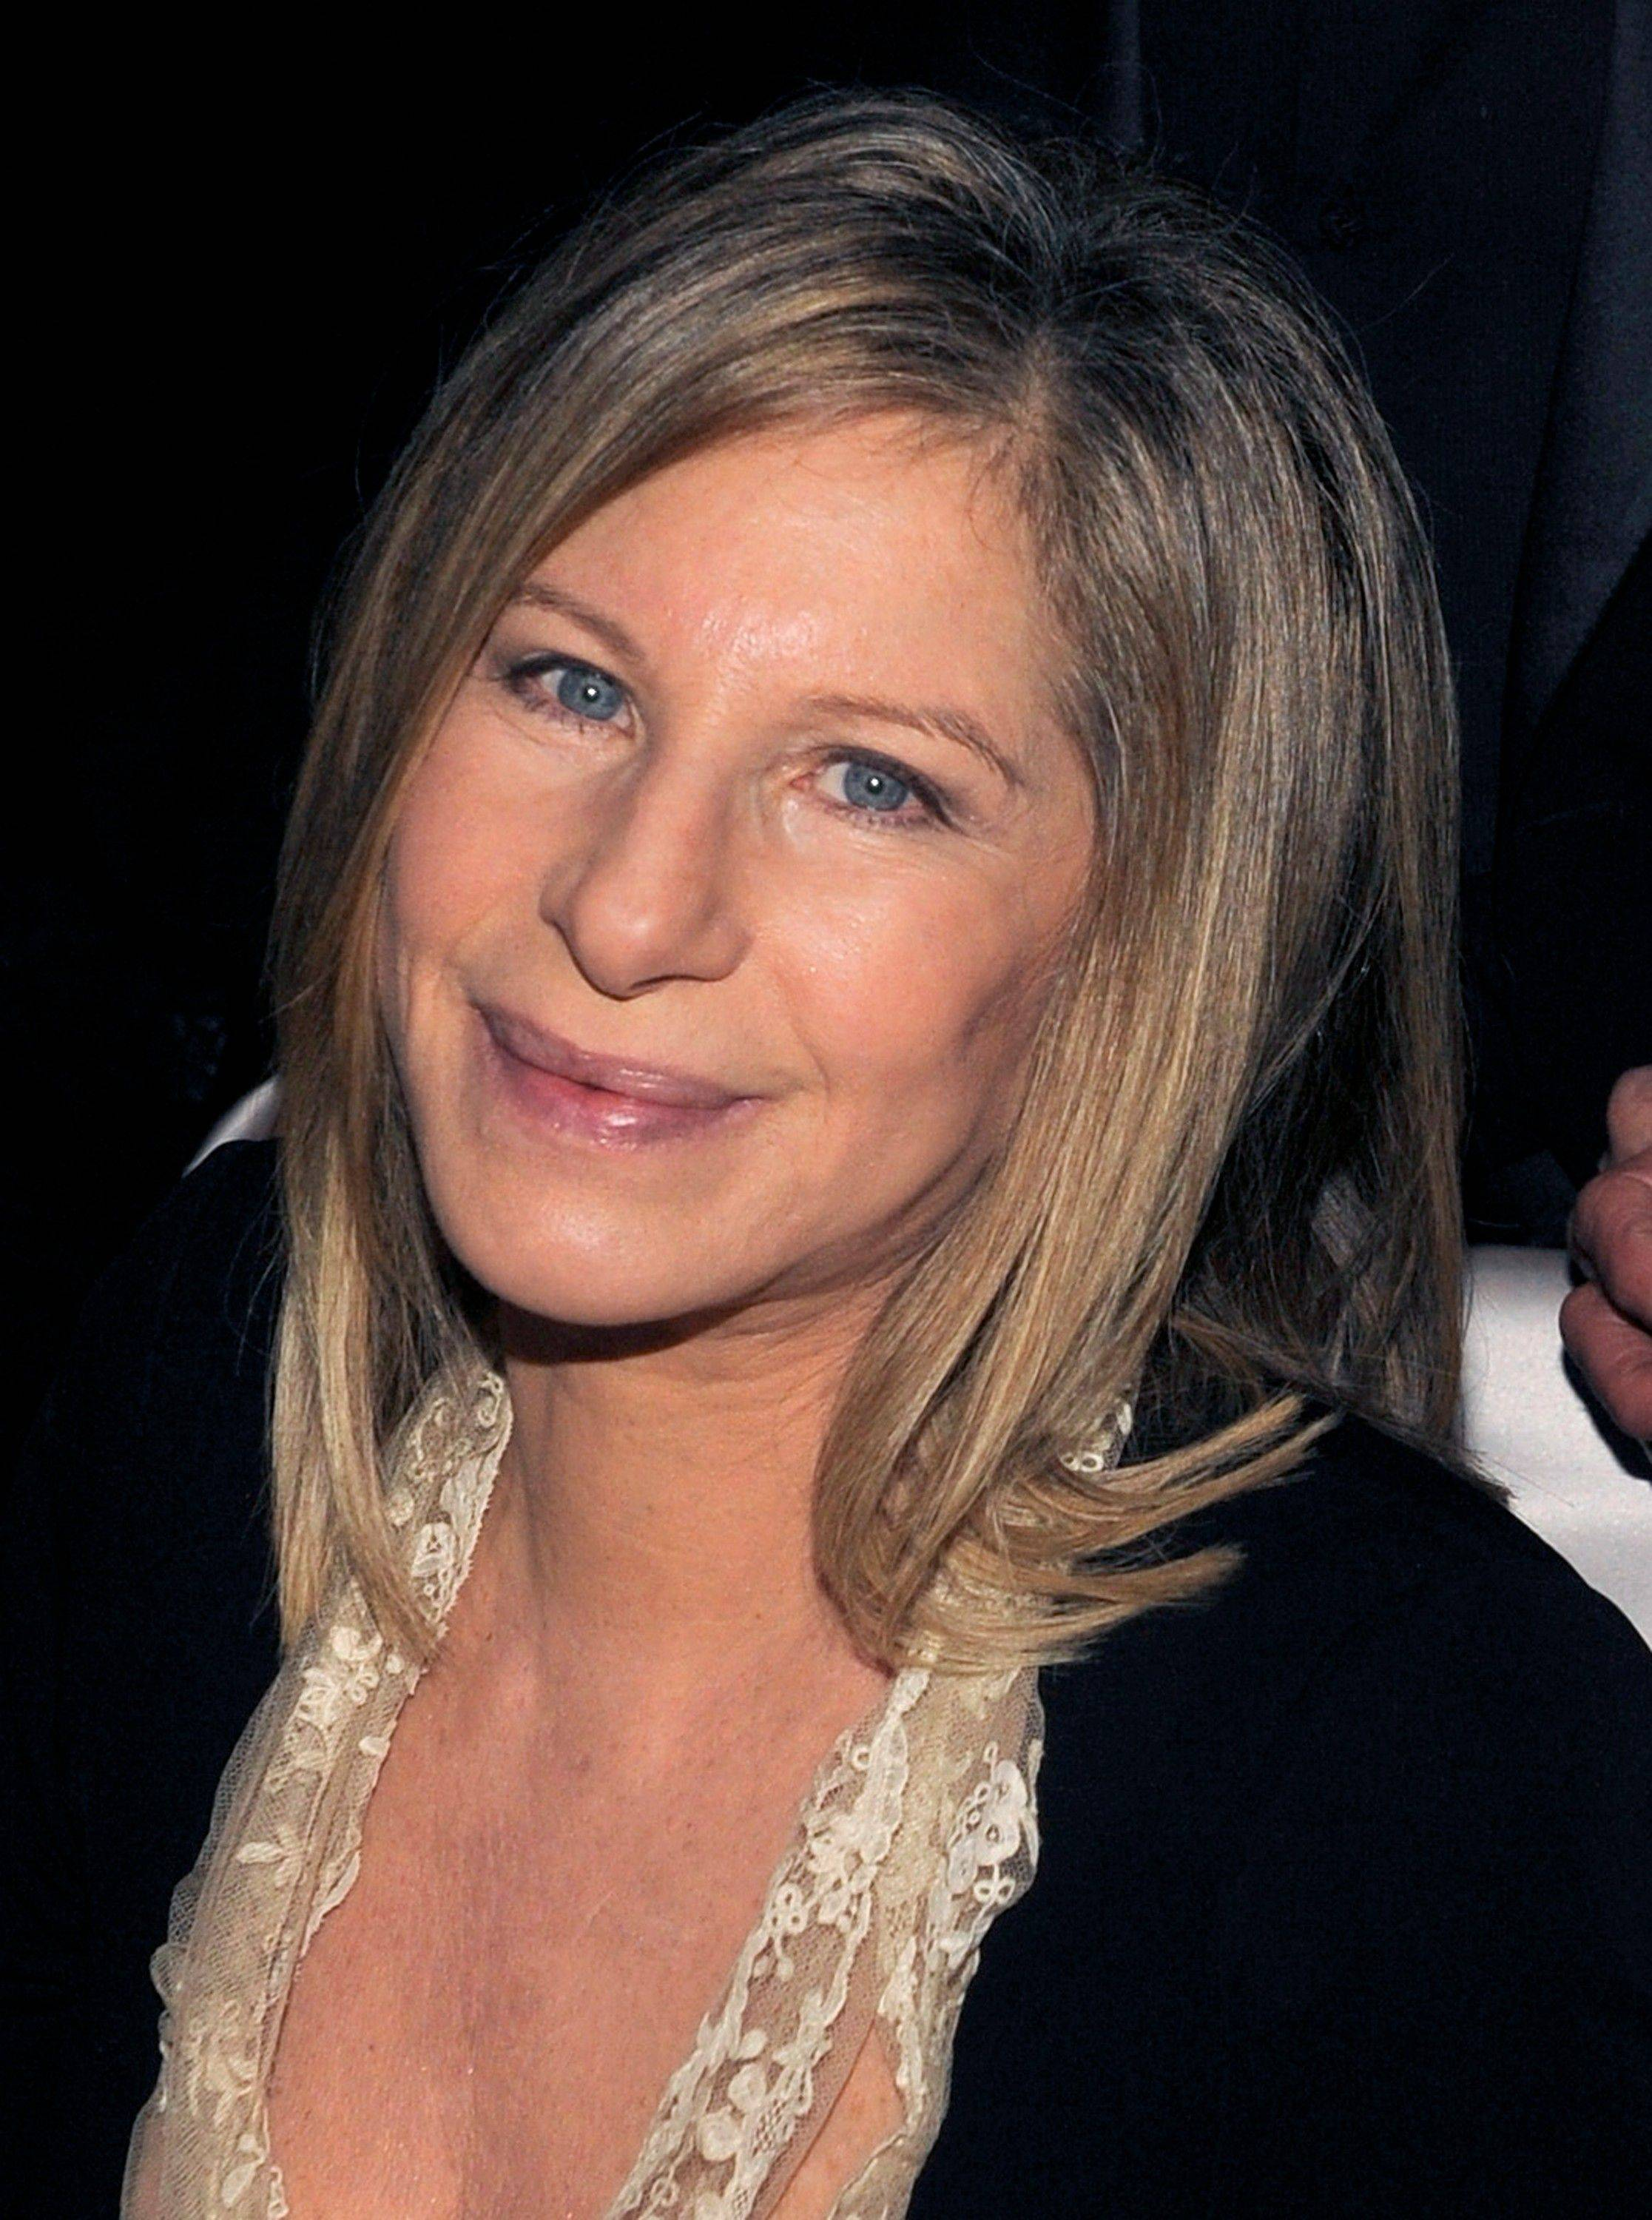 Barbra Streisand has recorded more than 60 songs from the songwriting team of Alan and Marilyn Bergman.